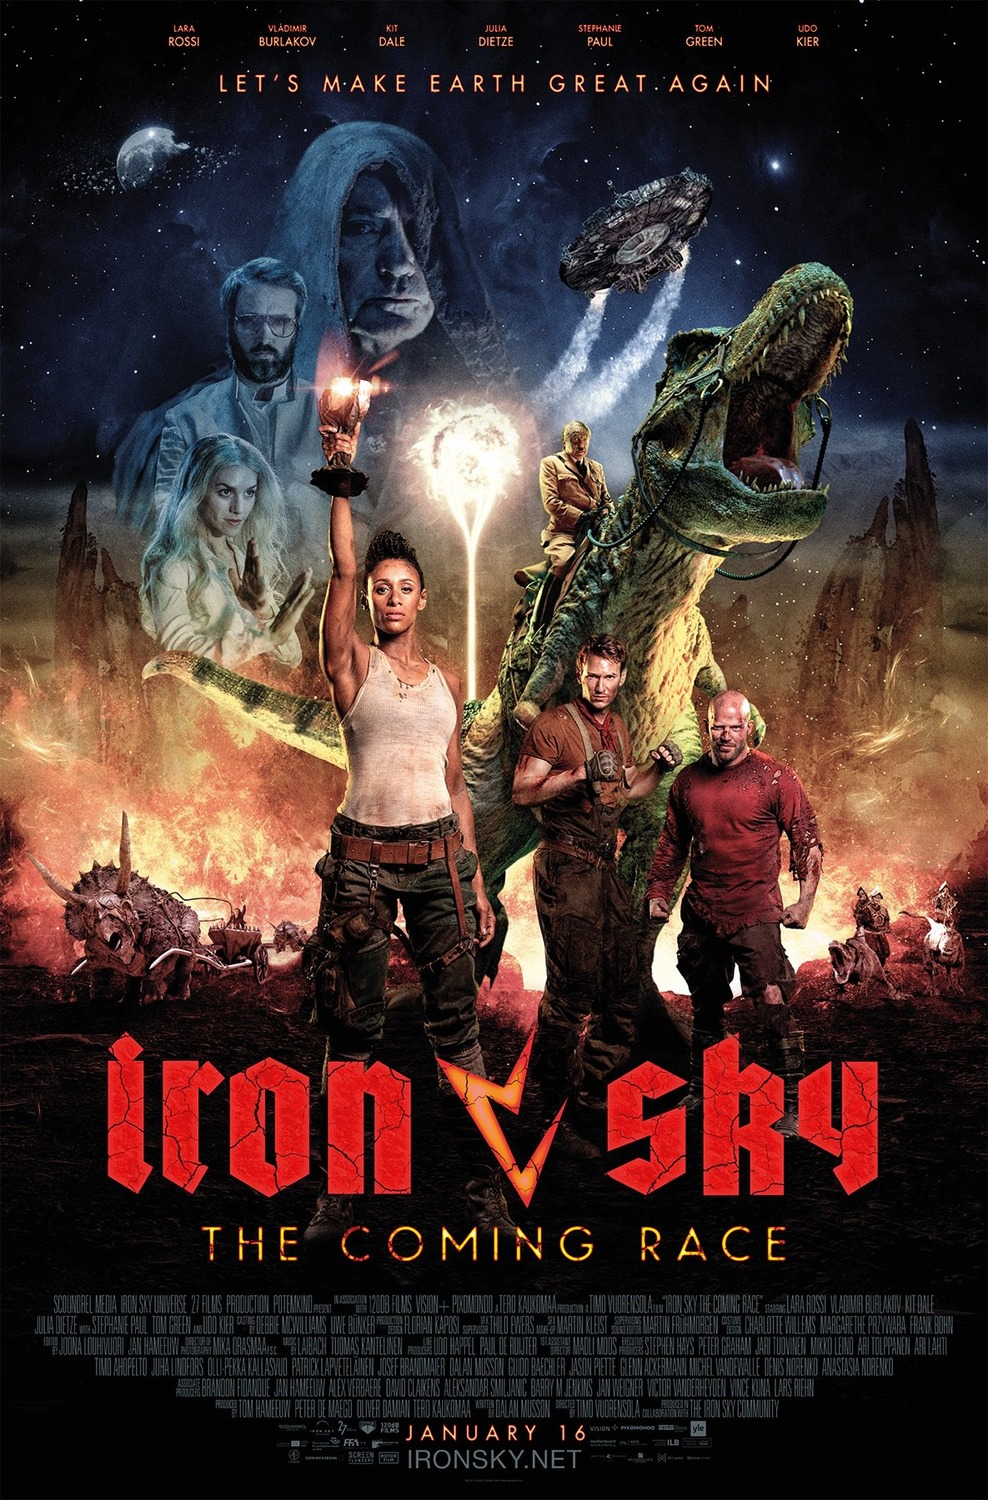 Extra Large Movie Poster Image for Iron Sky: The Coming Race (#1 of 2)